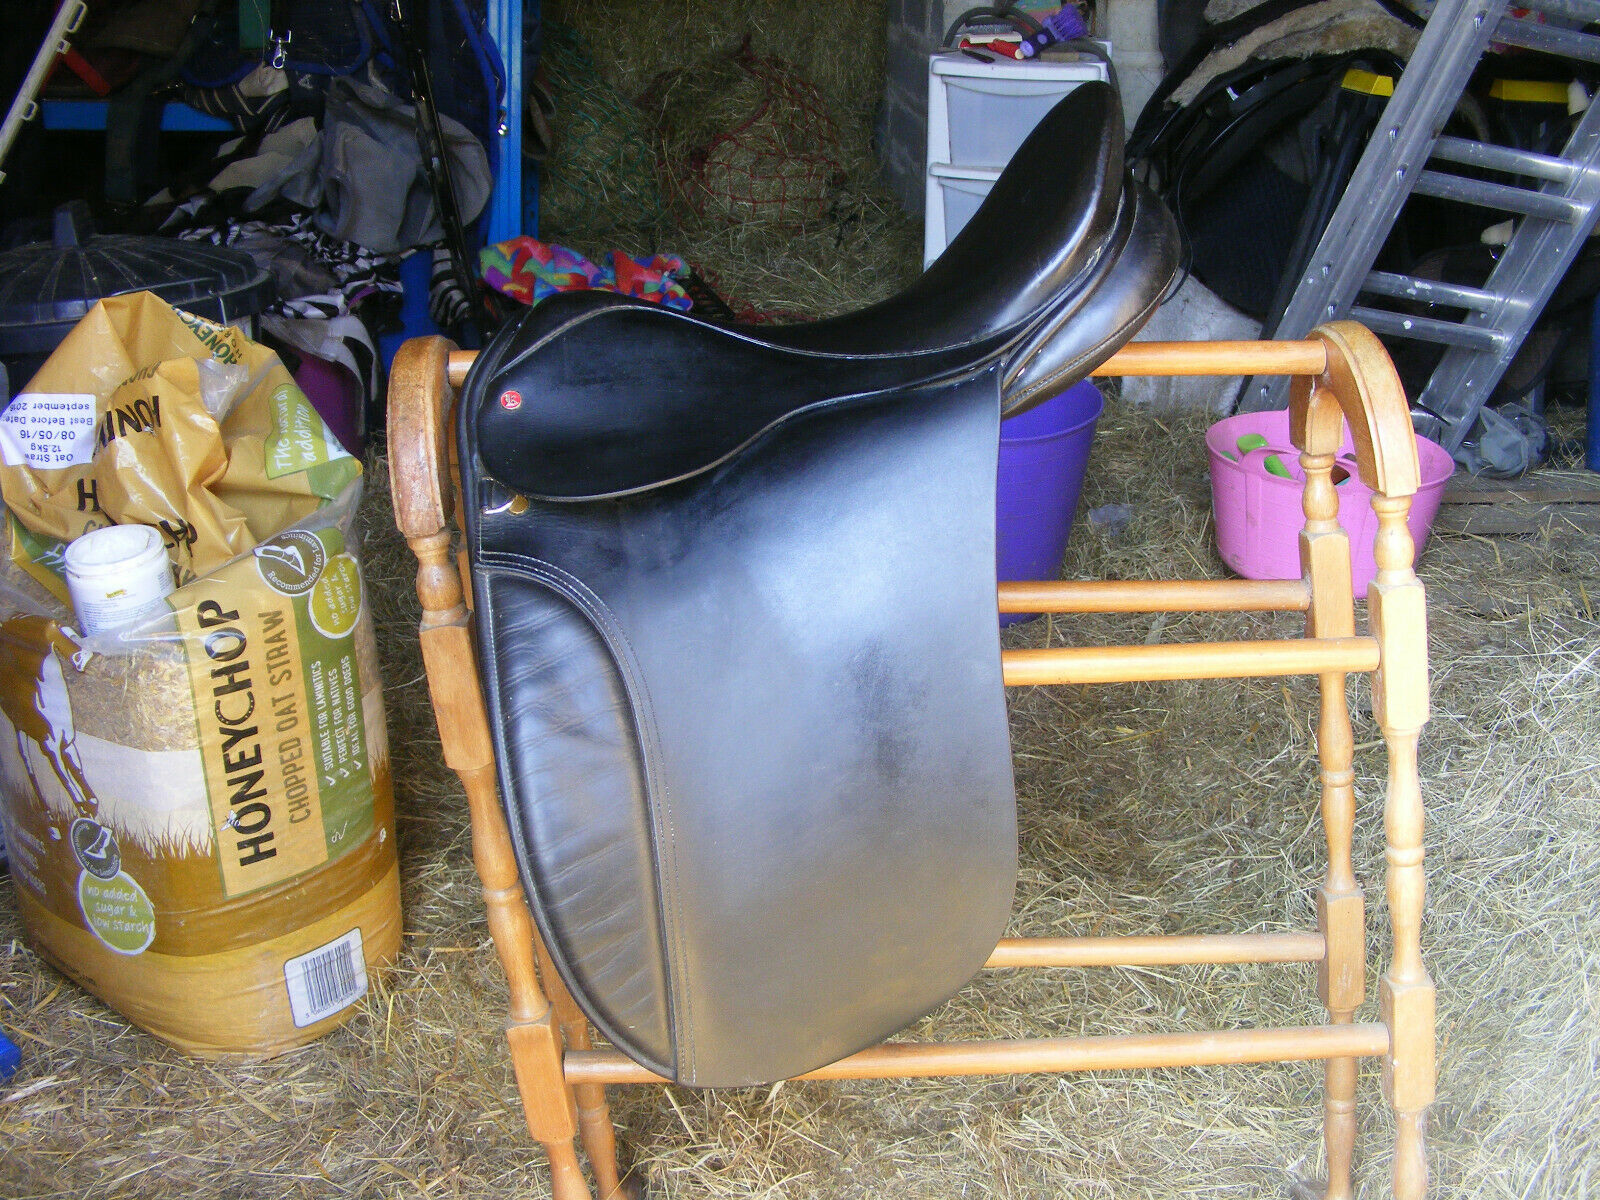 Kings saddlery of Walsall English Leather Dressage Saddle 17  M MW fit